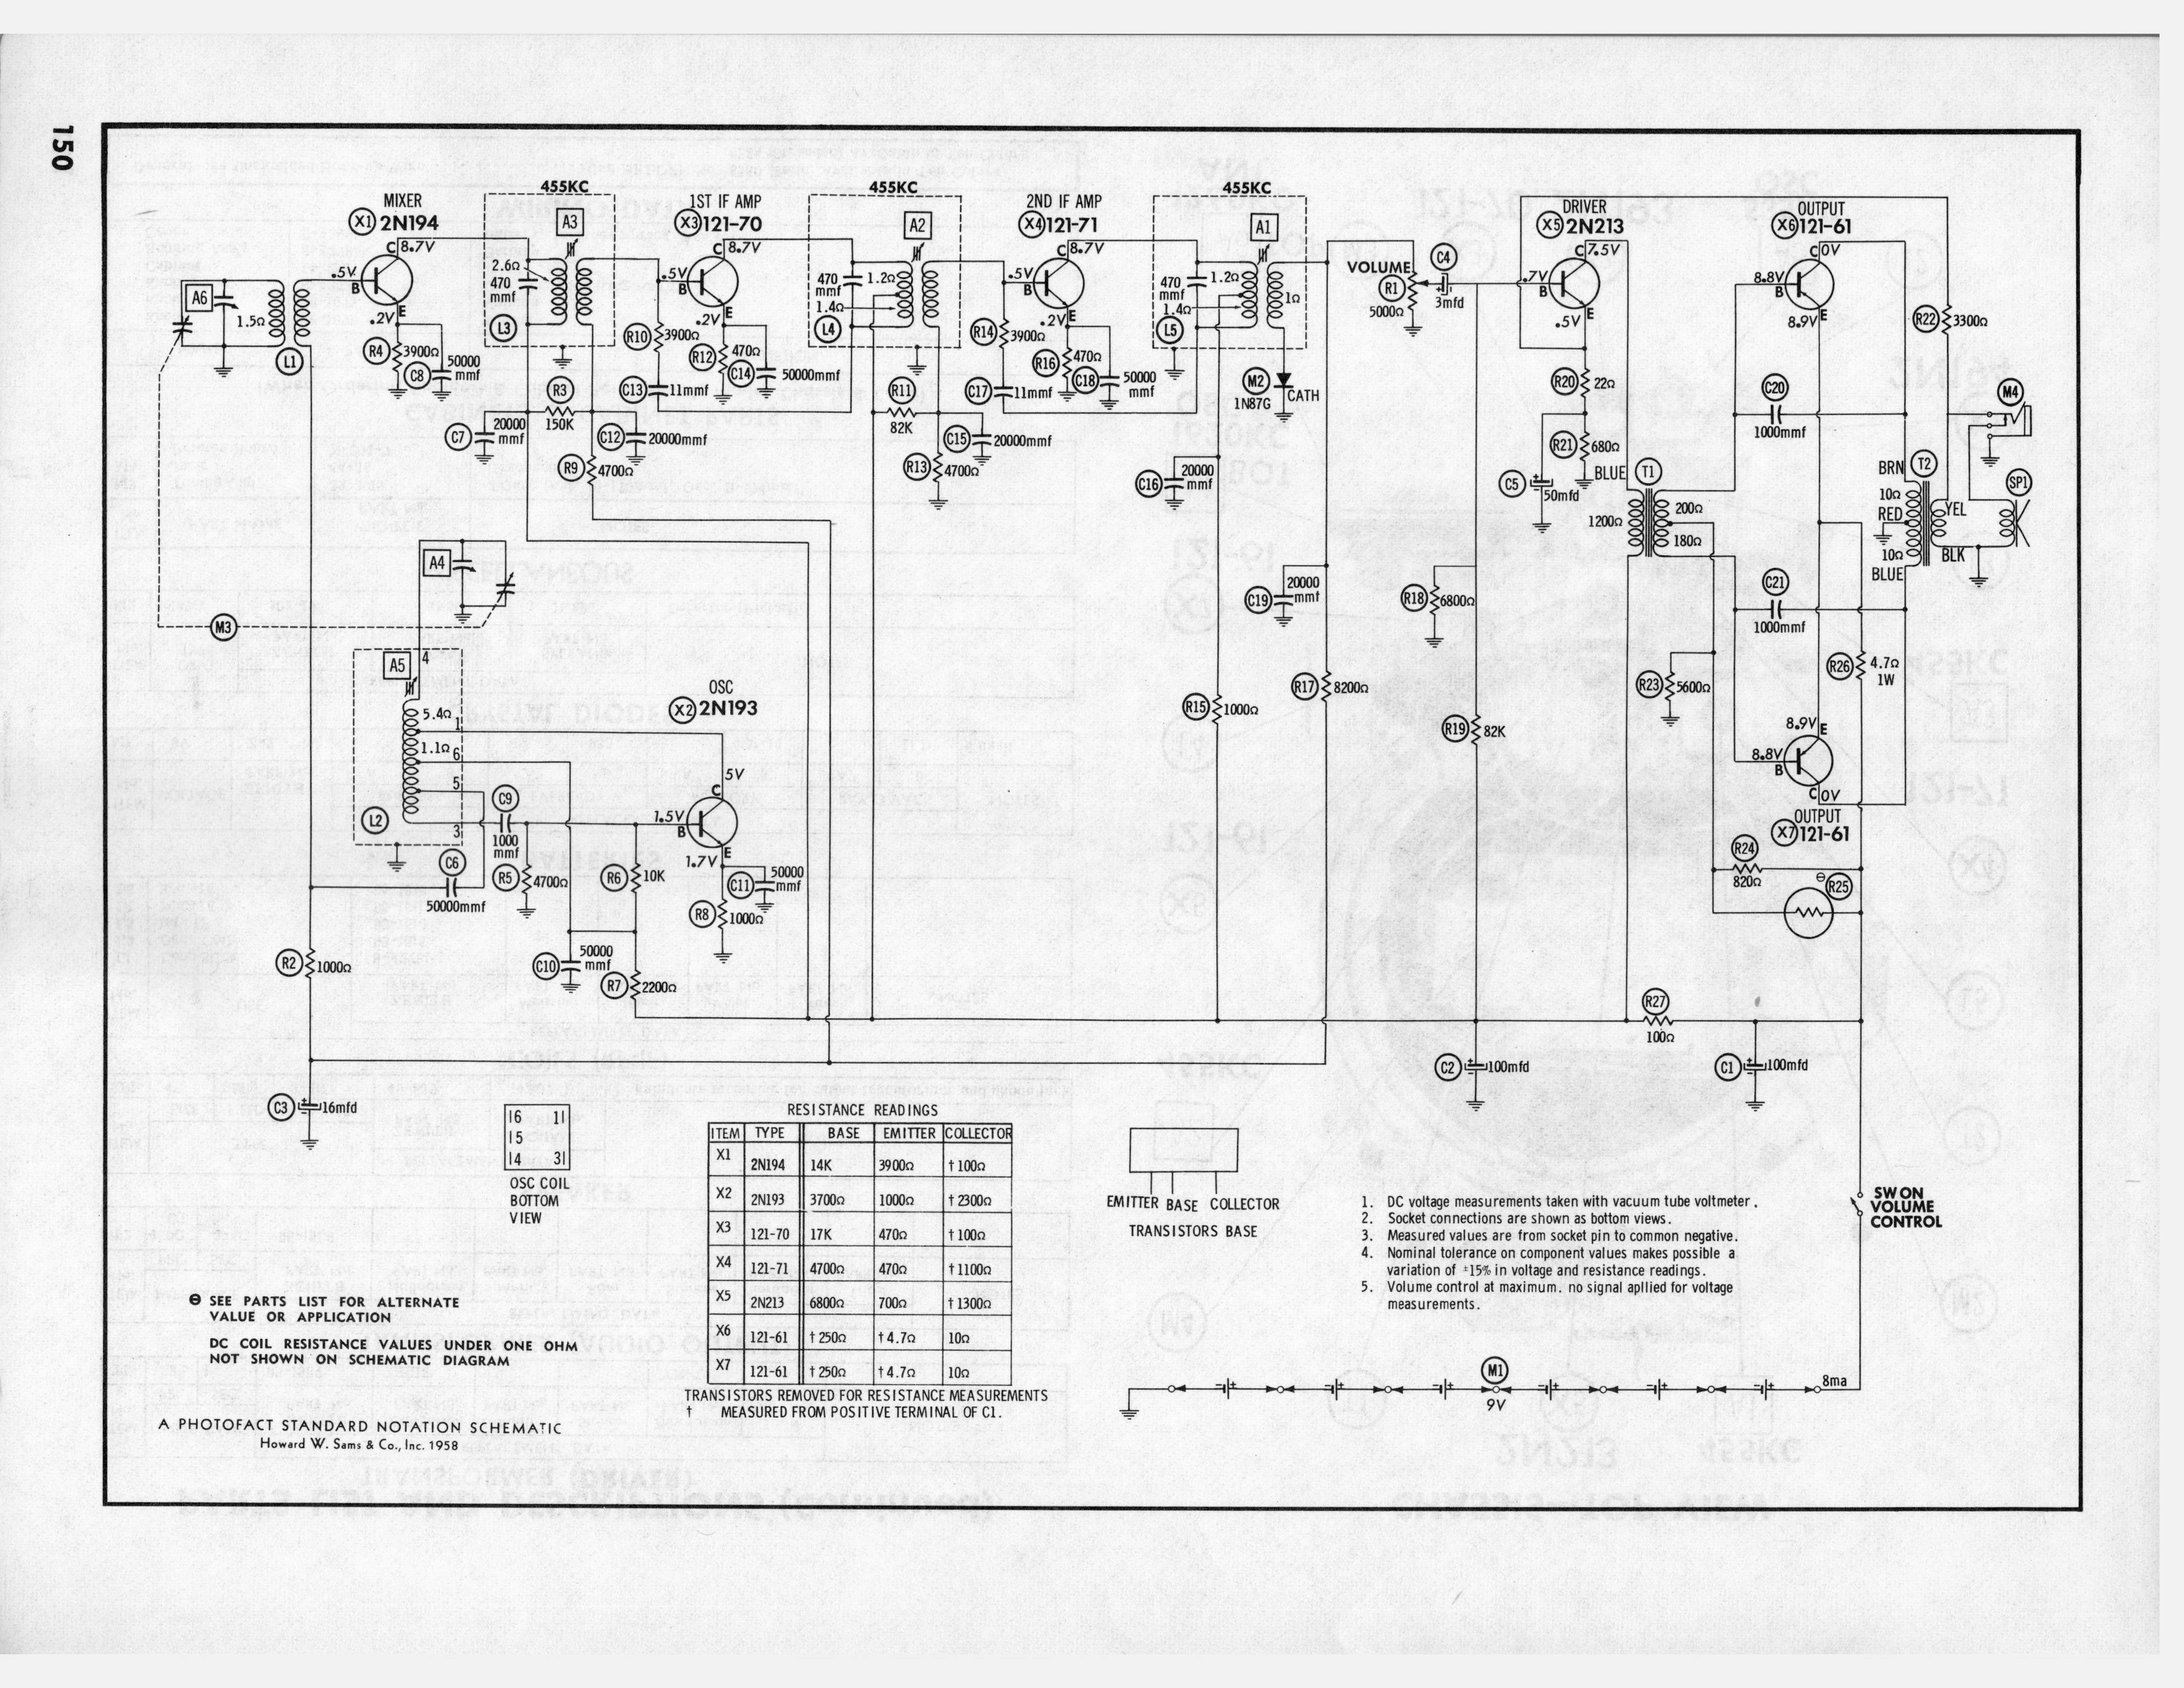 Reading Schematics Childhoodradio. Every Electronic Device Made Starts Out With A Schematic Some Of Them Much More Plex Than Our Or Tor Exle Look At This Zenith Radio. Wiring. Zenith Transistor Radio Schematics At Scoala.co